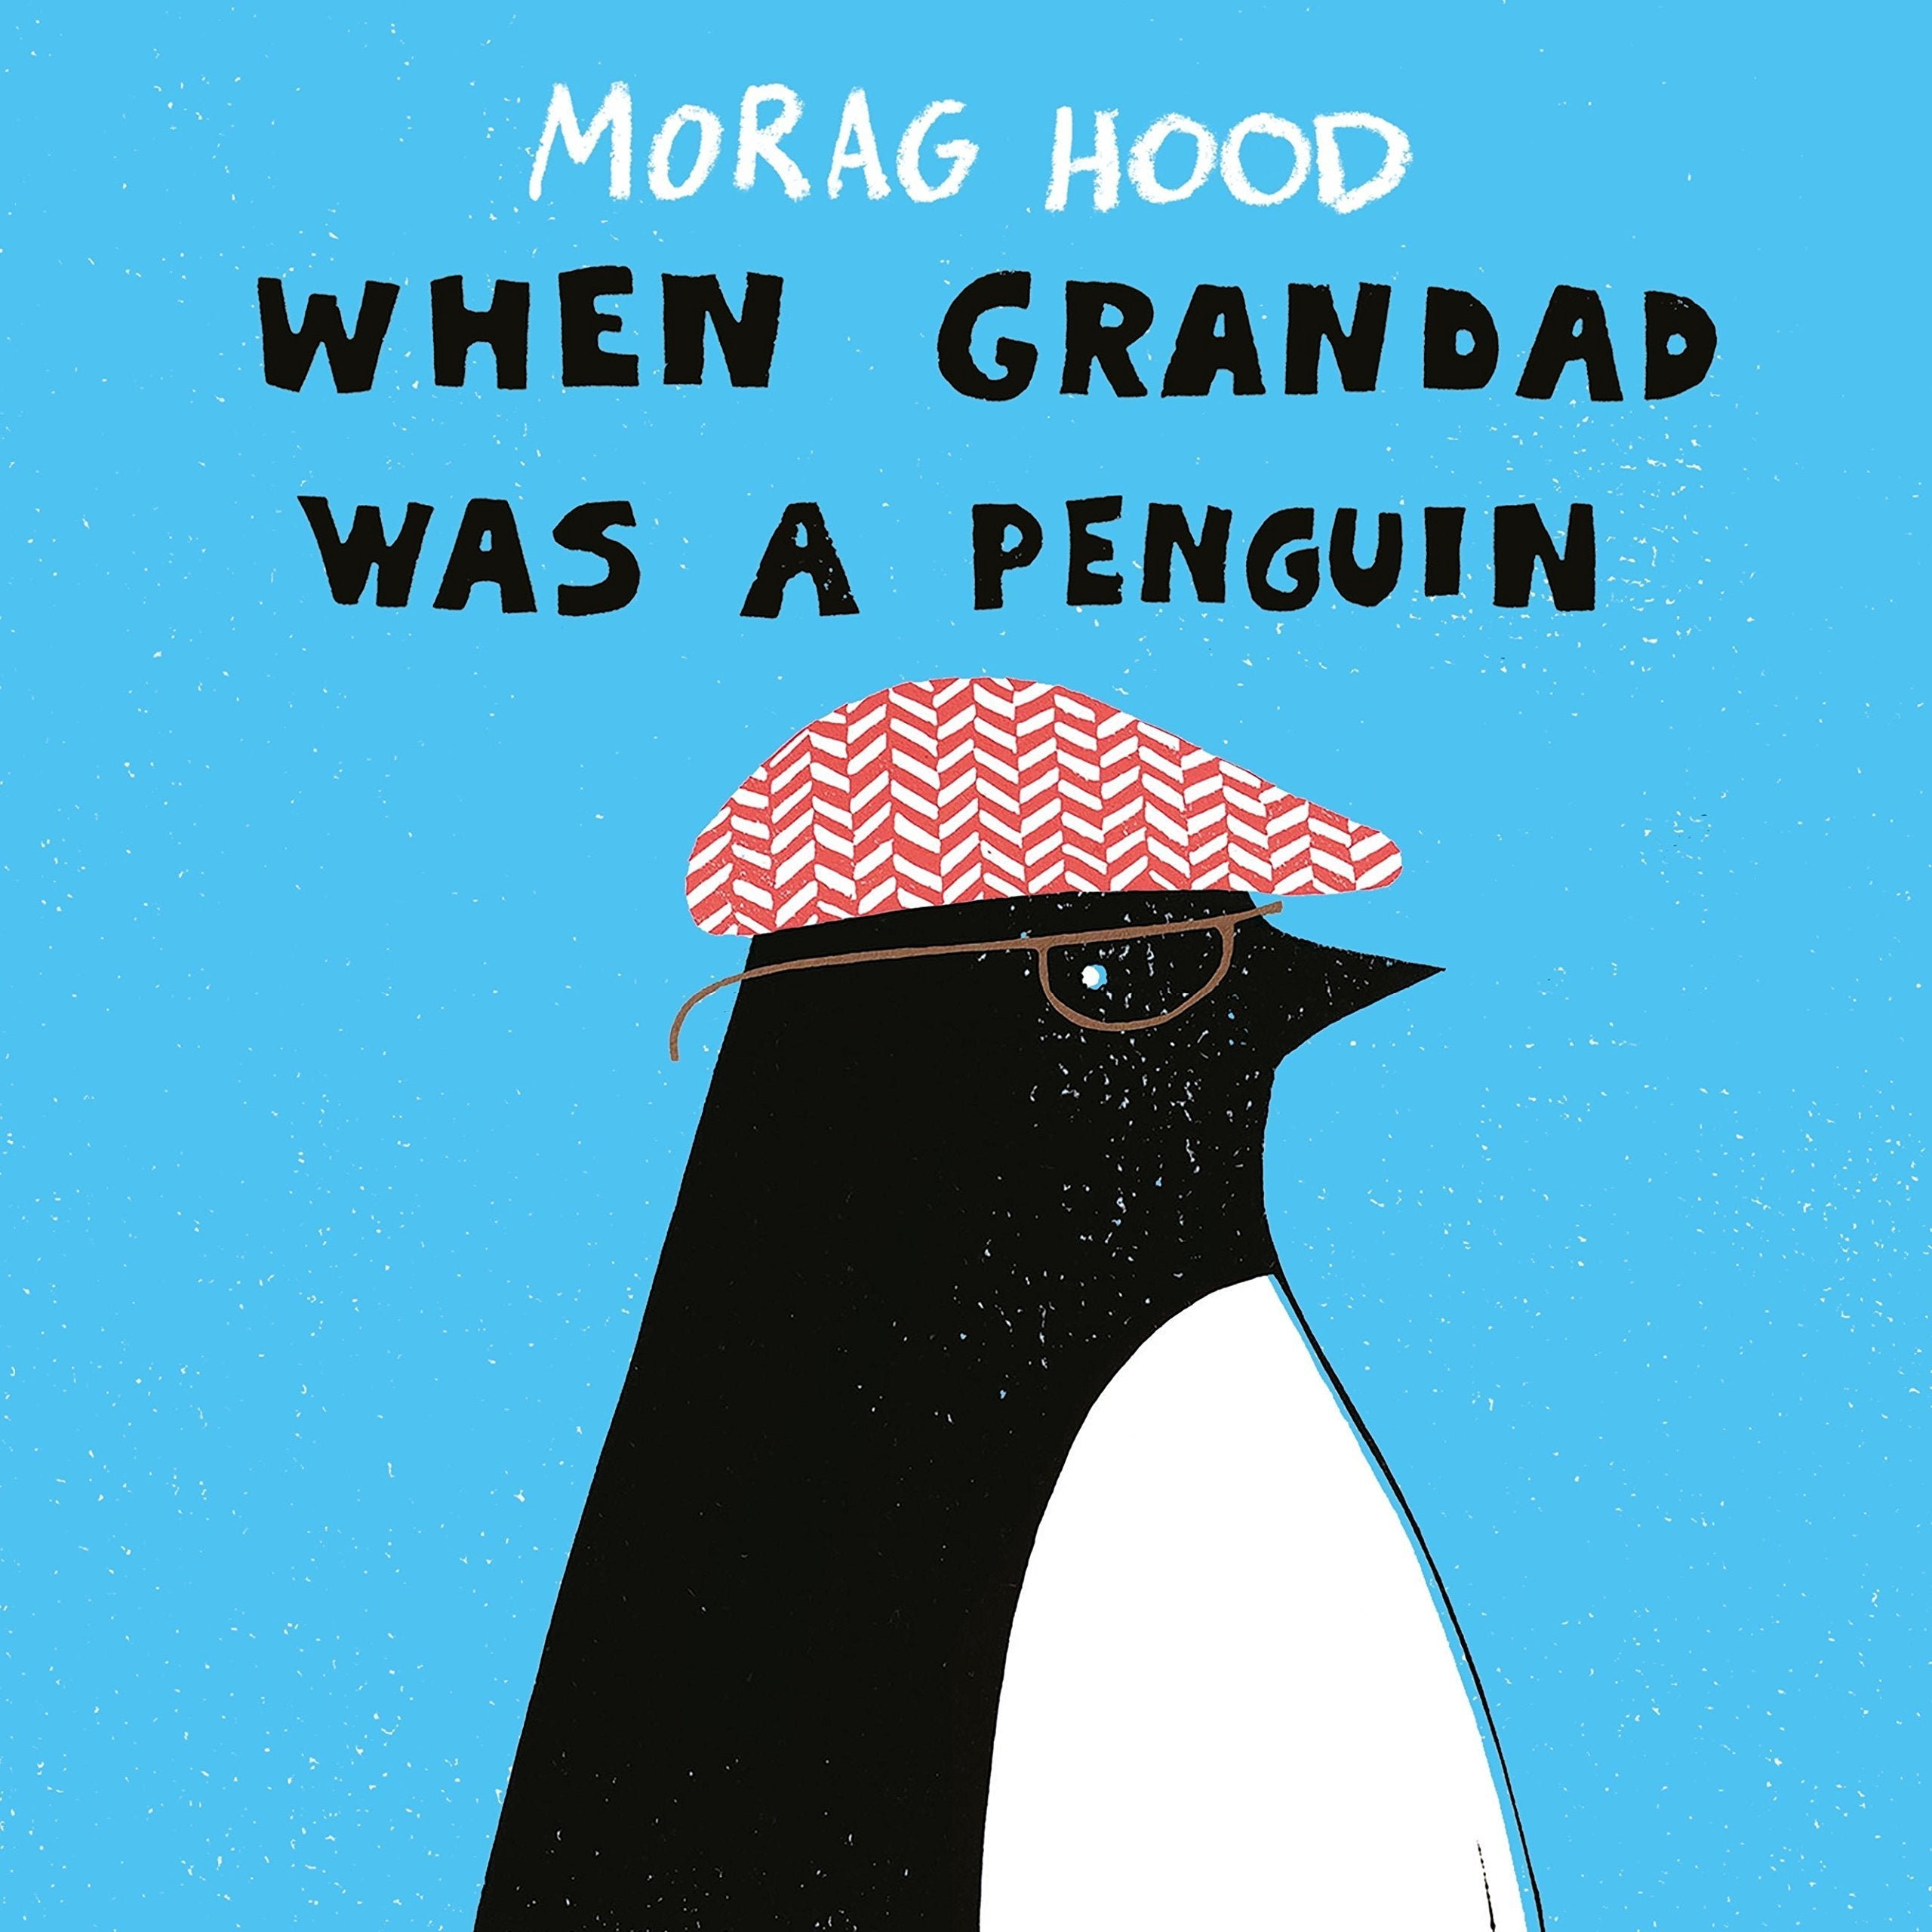 When grandad was a penguin (cover)